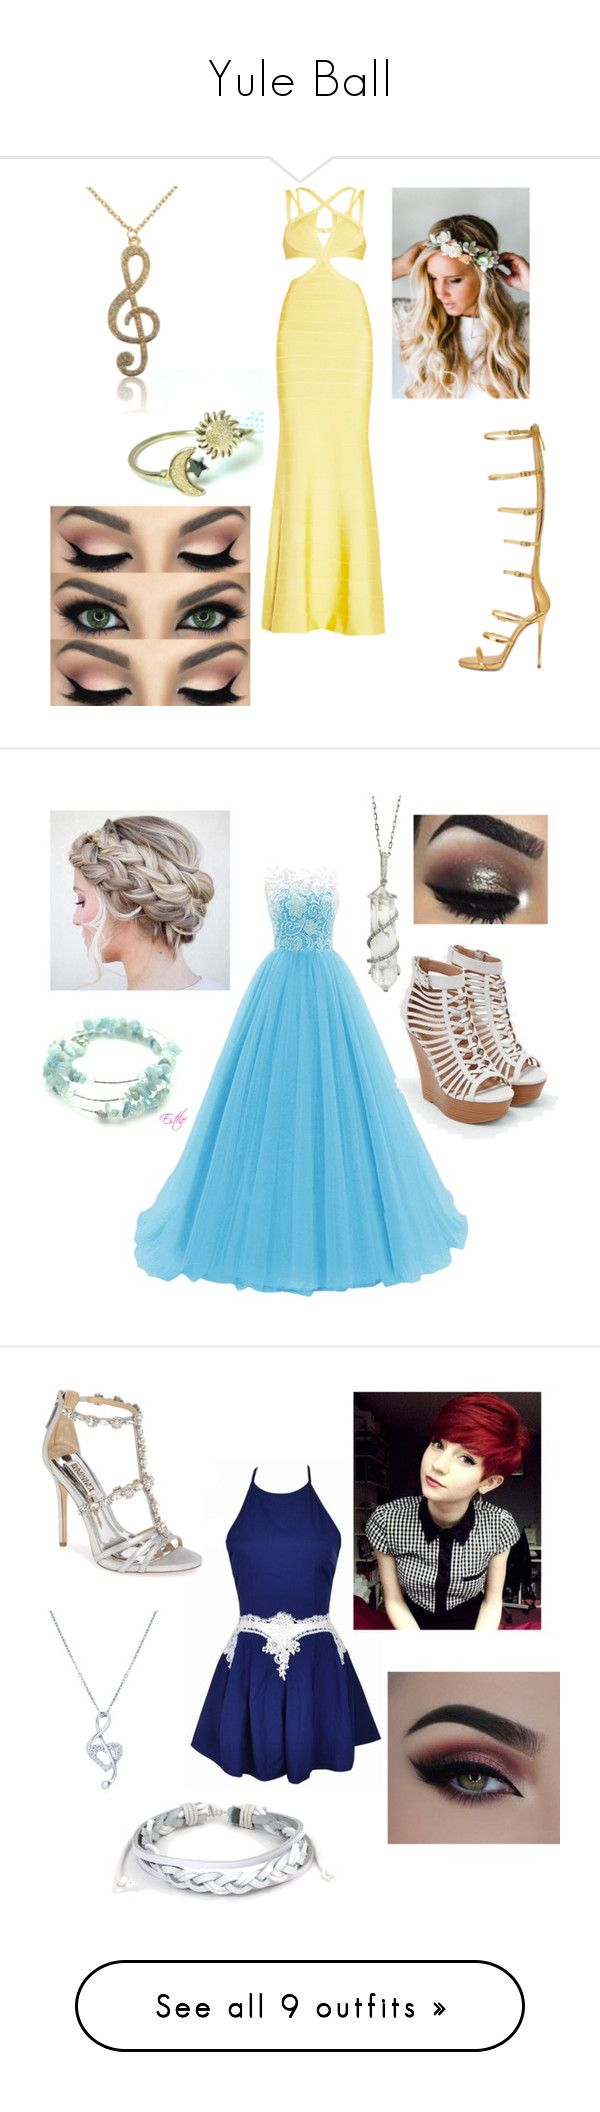 """""""Yule Ball"""" by lilyflowers812 ❤ liked on Polyvore featuring Hervé Léger, Emily Rose Flower Crowns, WithChic, JustFab, Sharon Khazzam, BERRICLE, West Coast Jewelry, Badgley Mischka, Caparros and ALDO"""